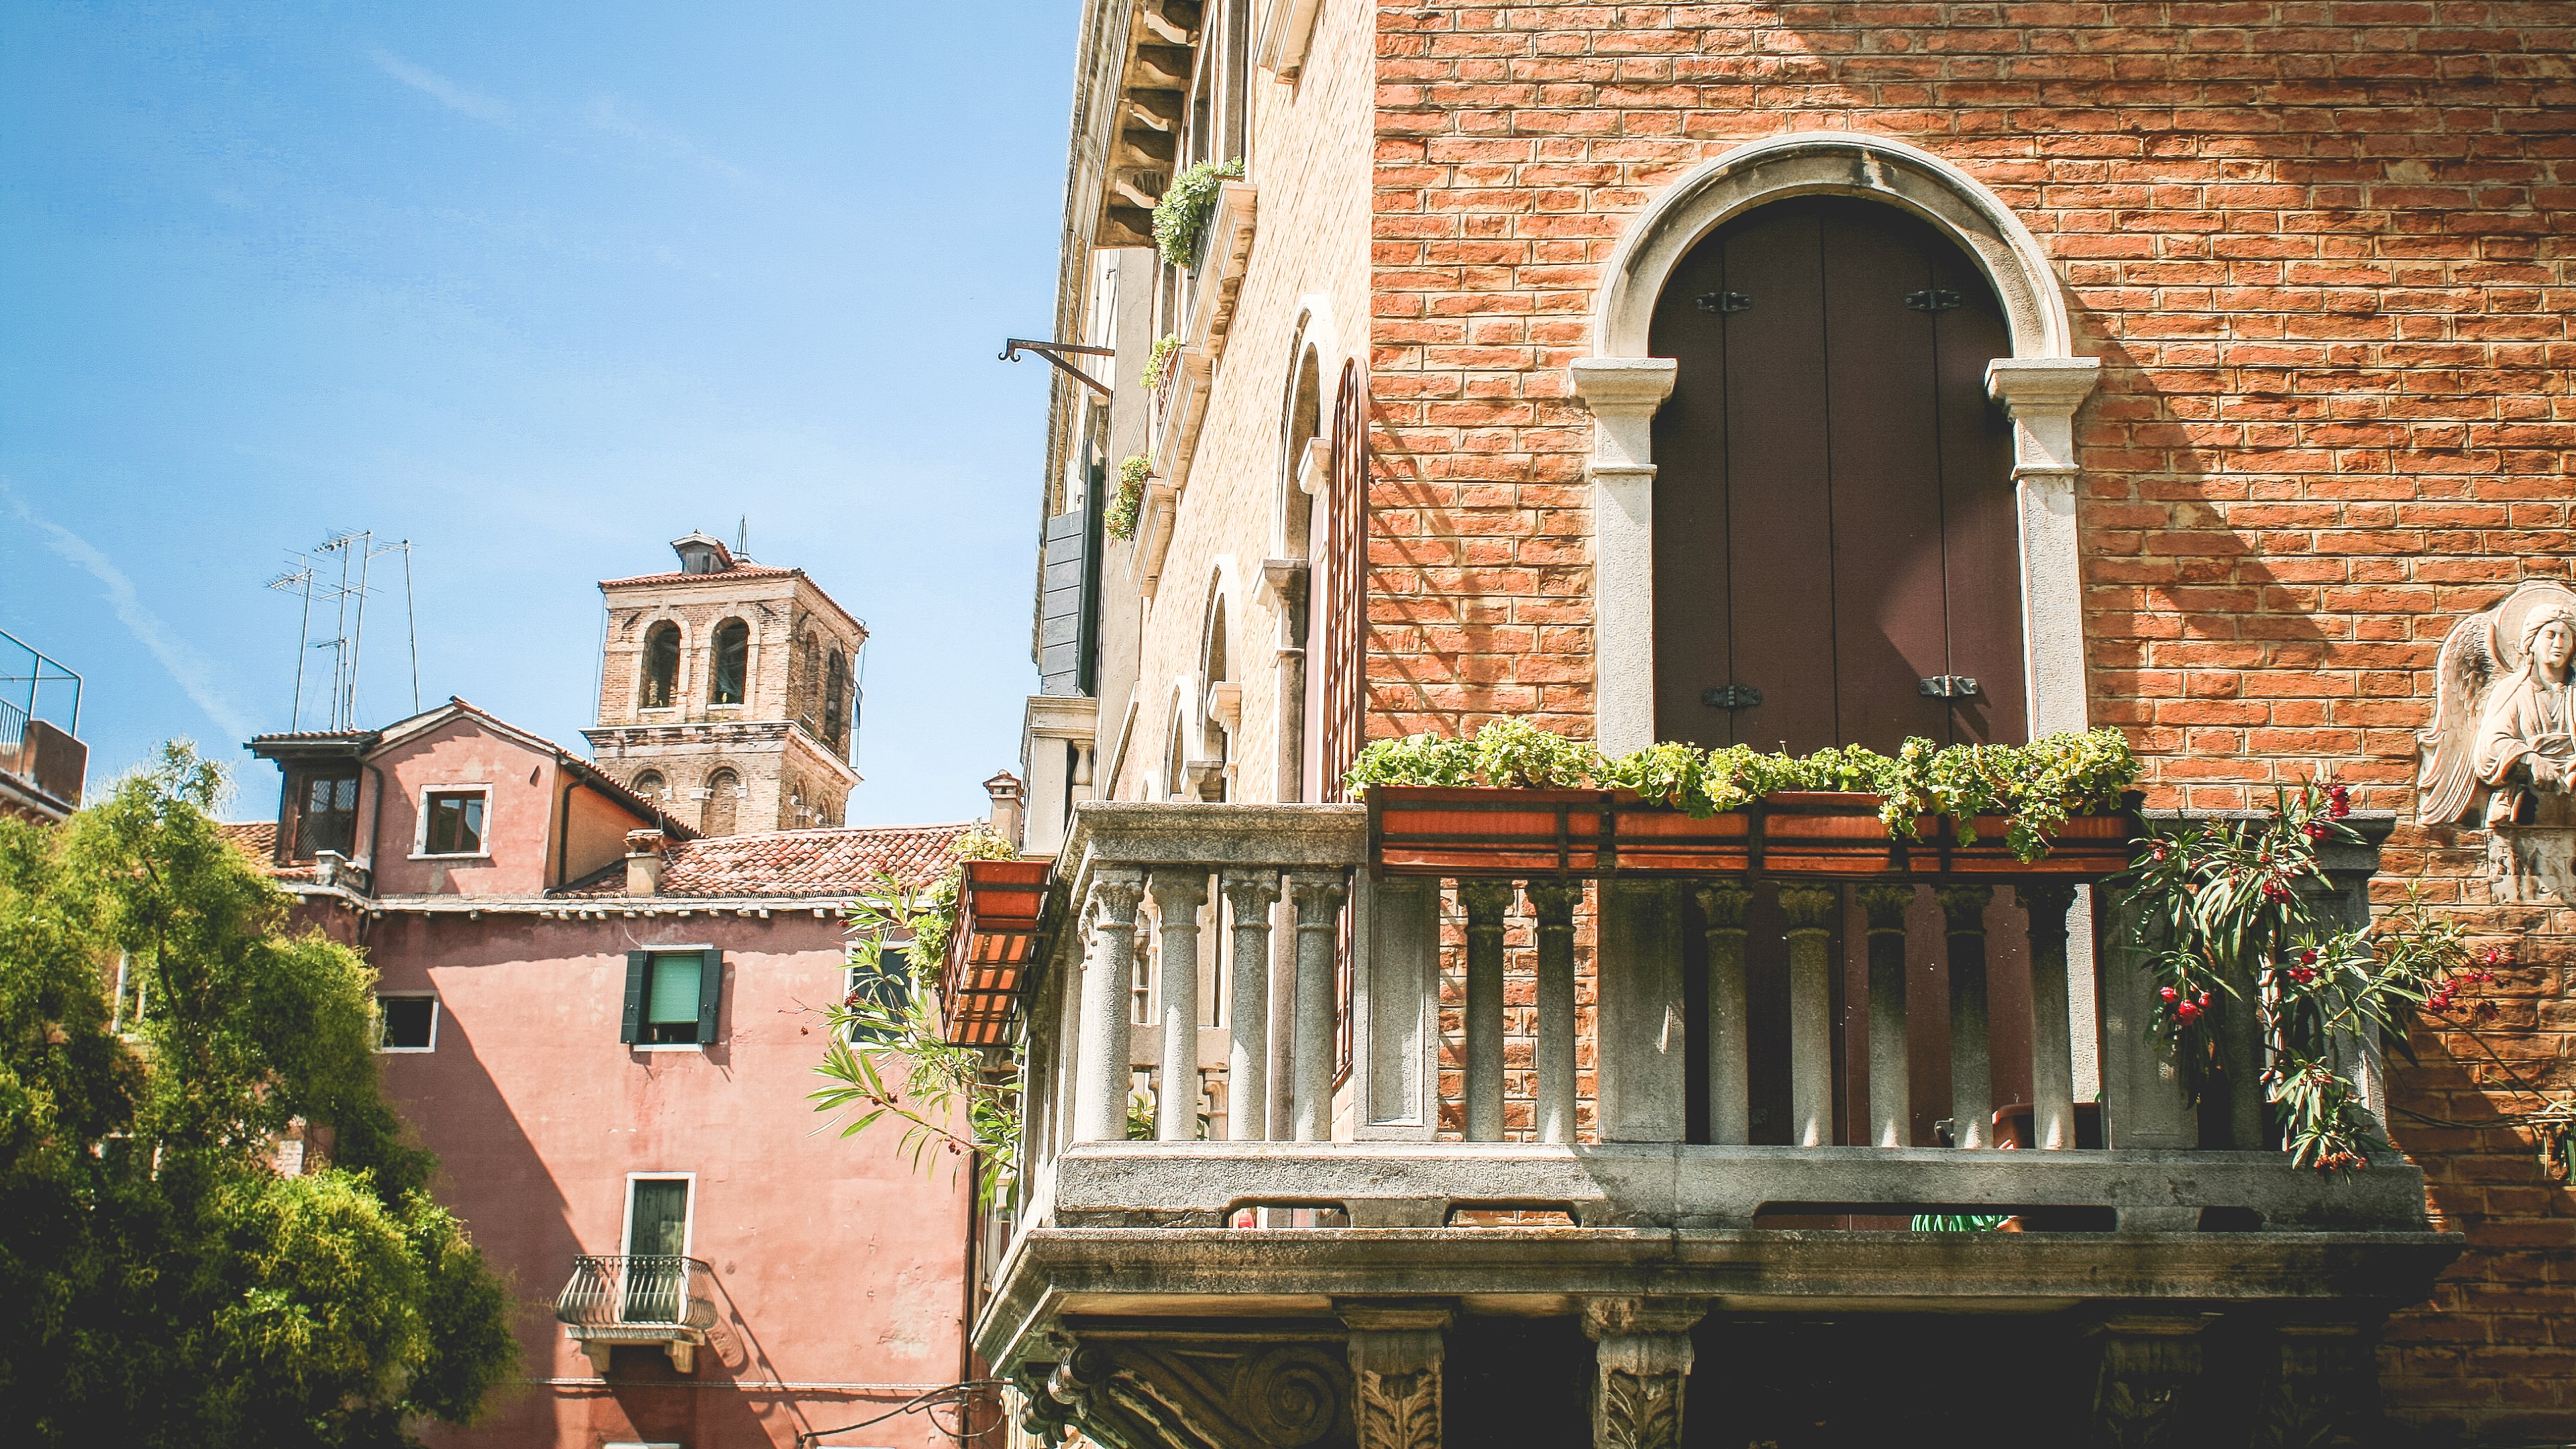 Summer In Italy The Venice Architecture Hd Wallpapers